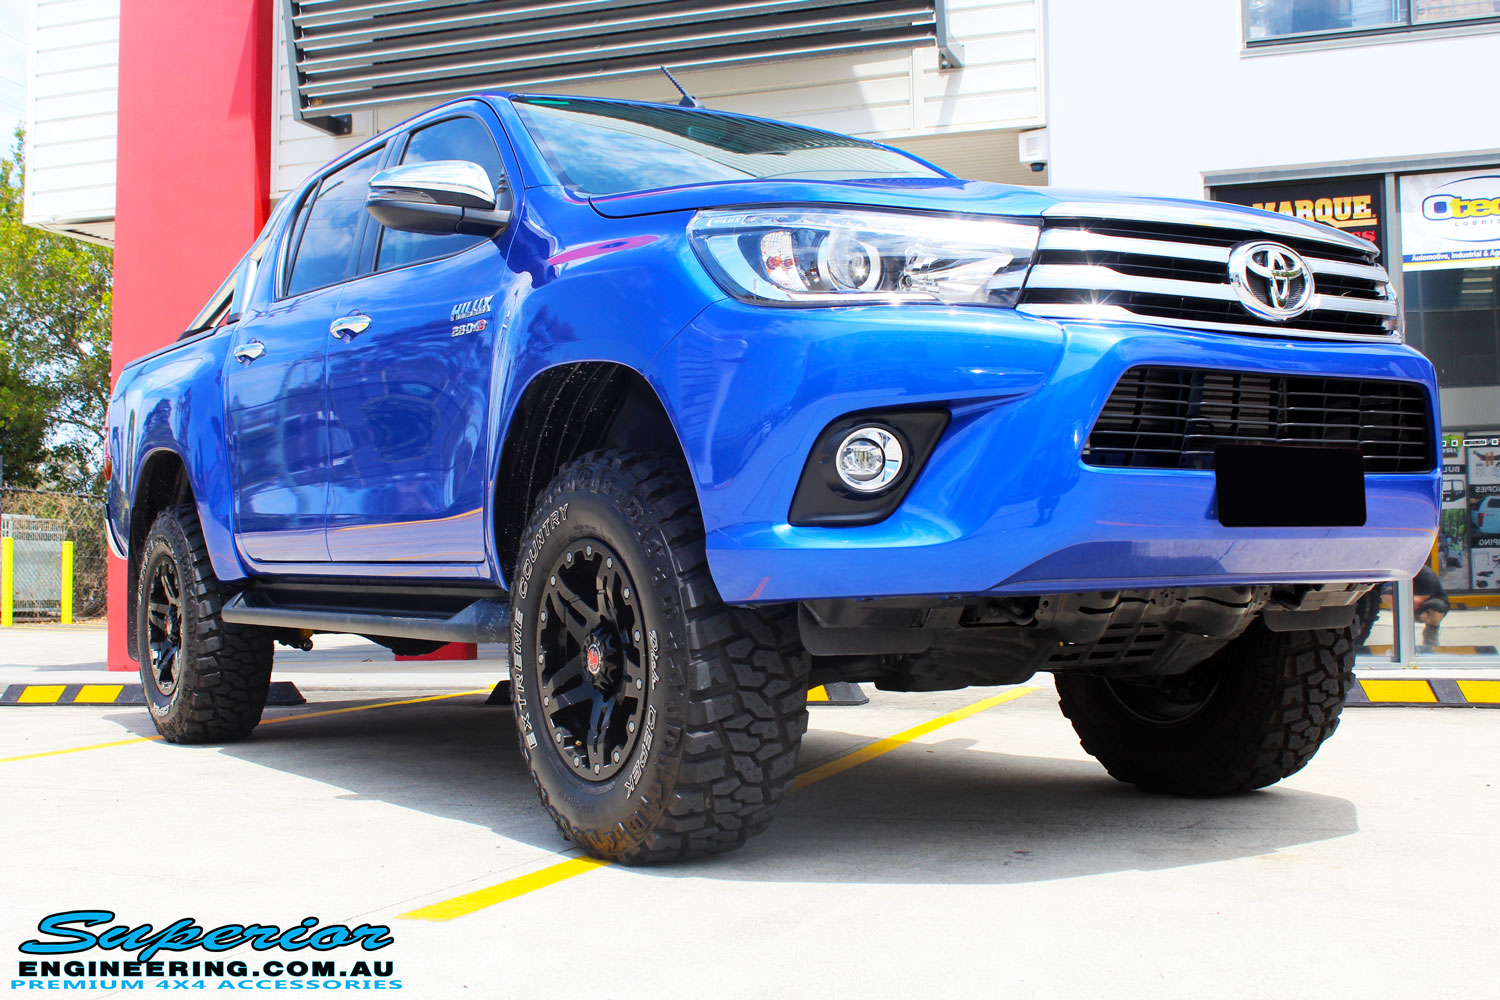 """Right front side view of a Toyota Revo Hilux Dual Cab in Blue after fitment of a 3"""" Inch Lift Kit with Superior Upper Control Arms and Diff Drop Kit"""